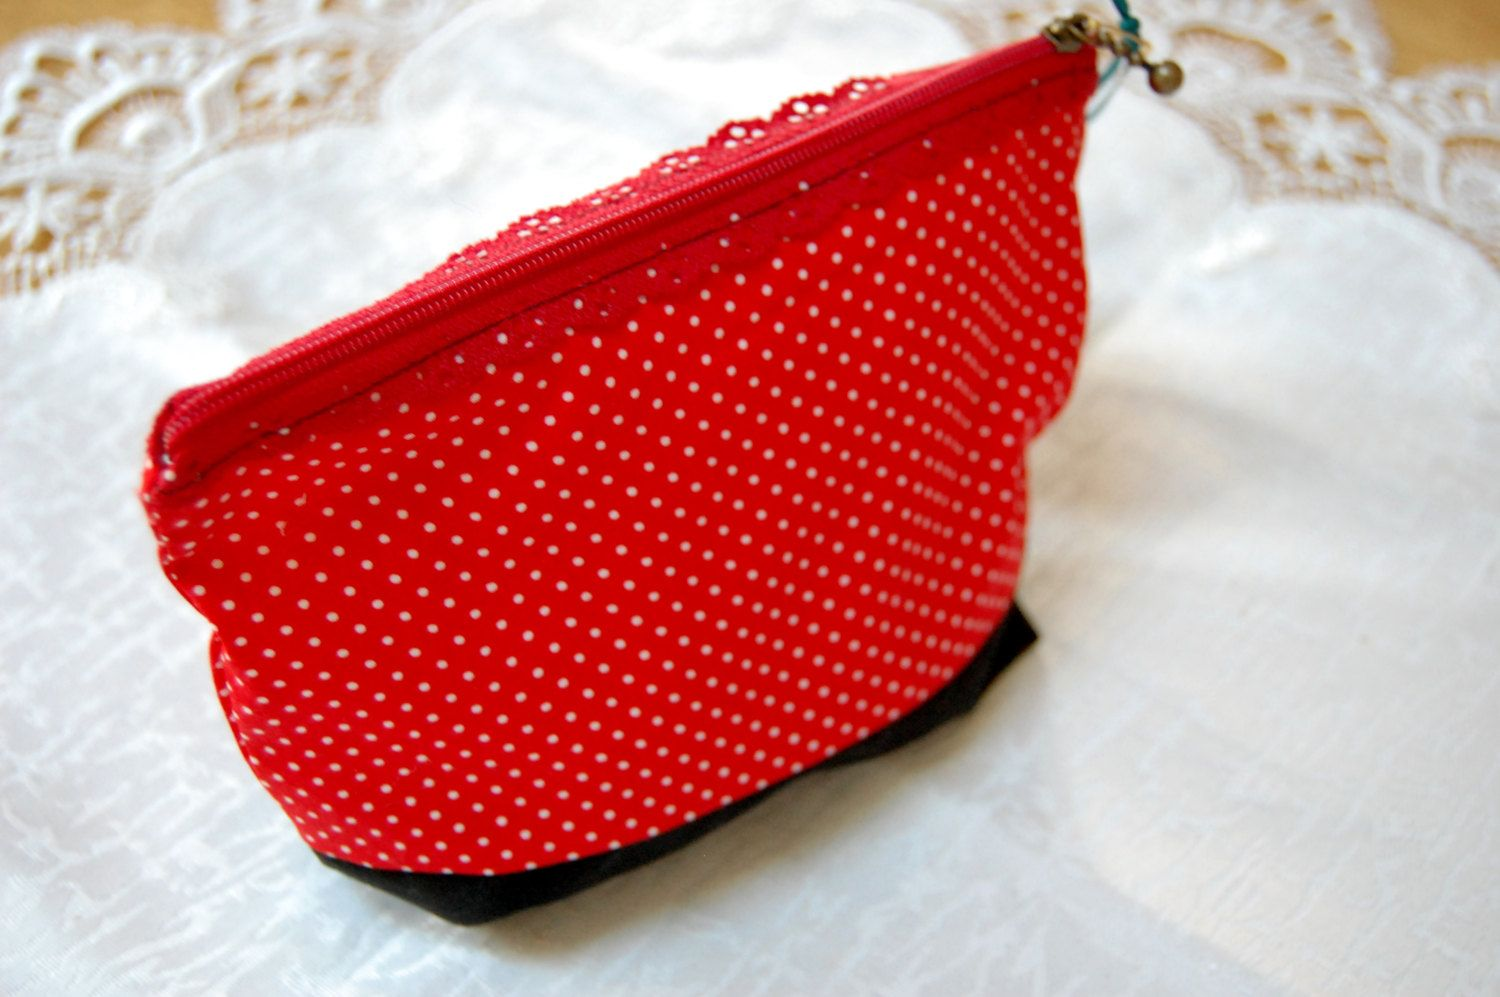 Polka-Dot Eyelet Cosmetic Bags 5x7 by MistyMeadowTreasures on Etsy